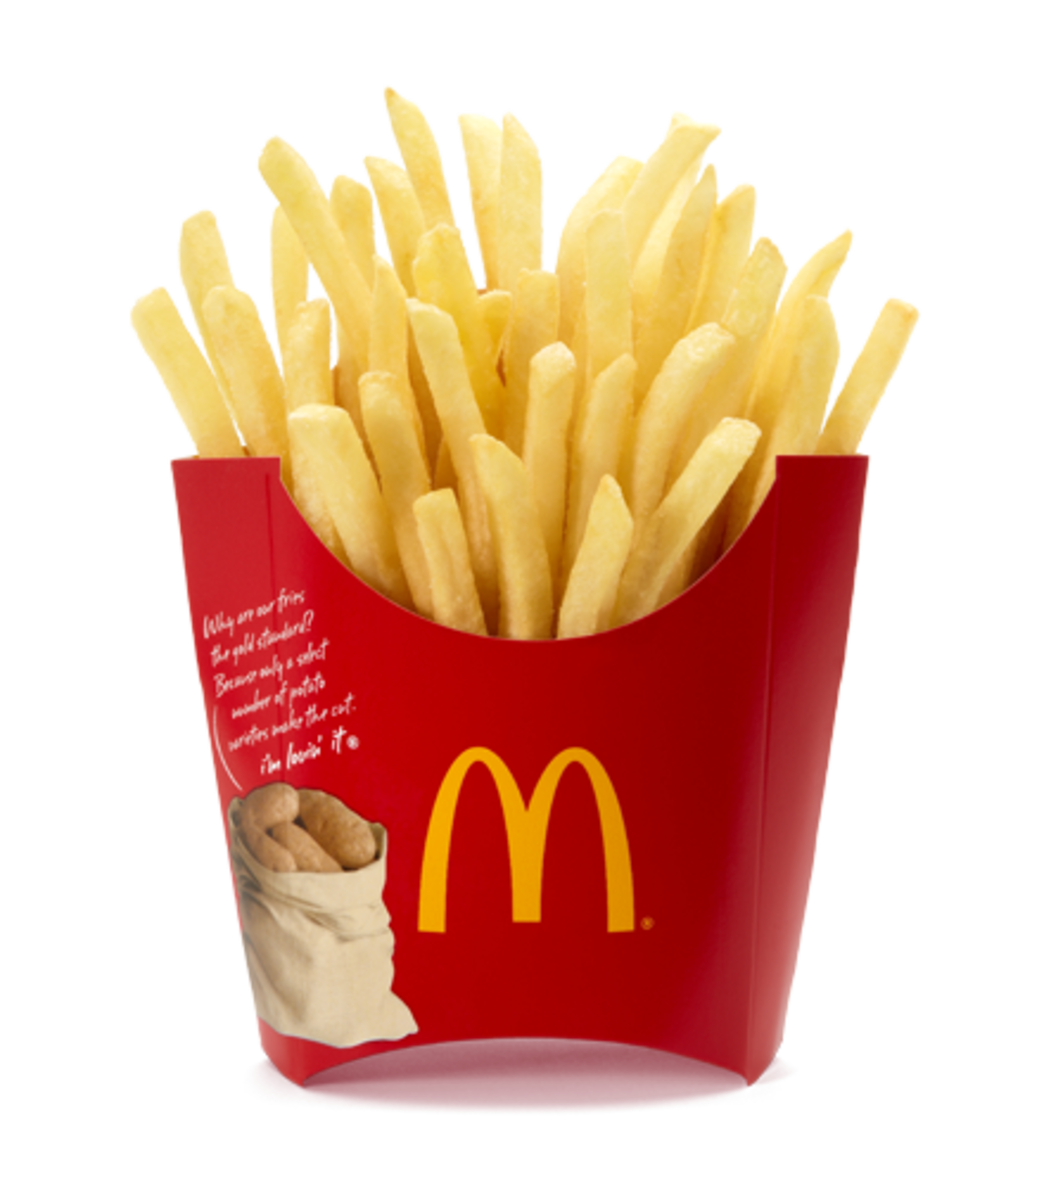 Fries - don't go there!